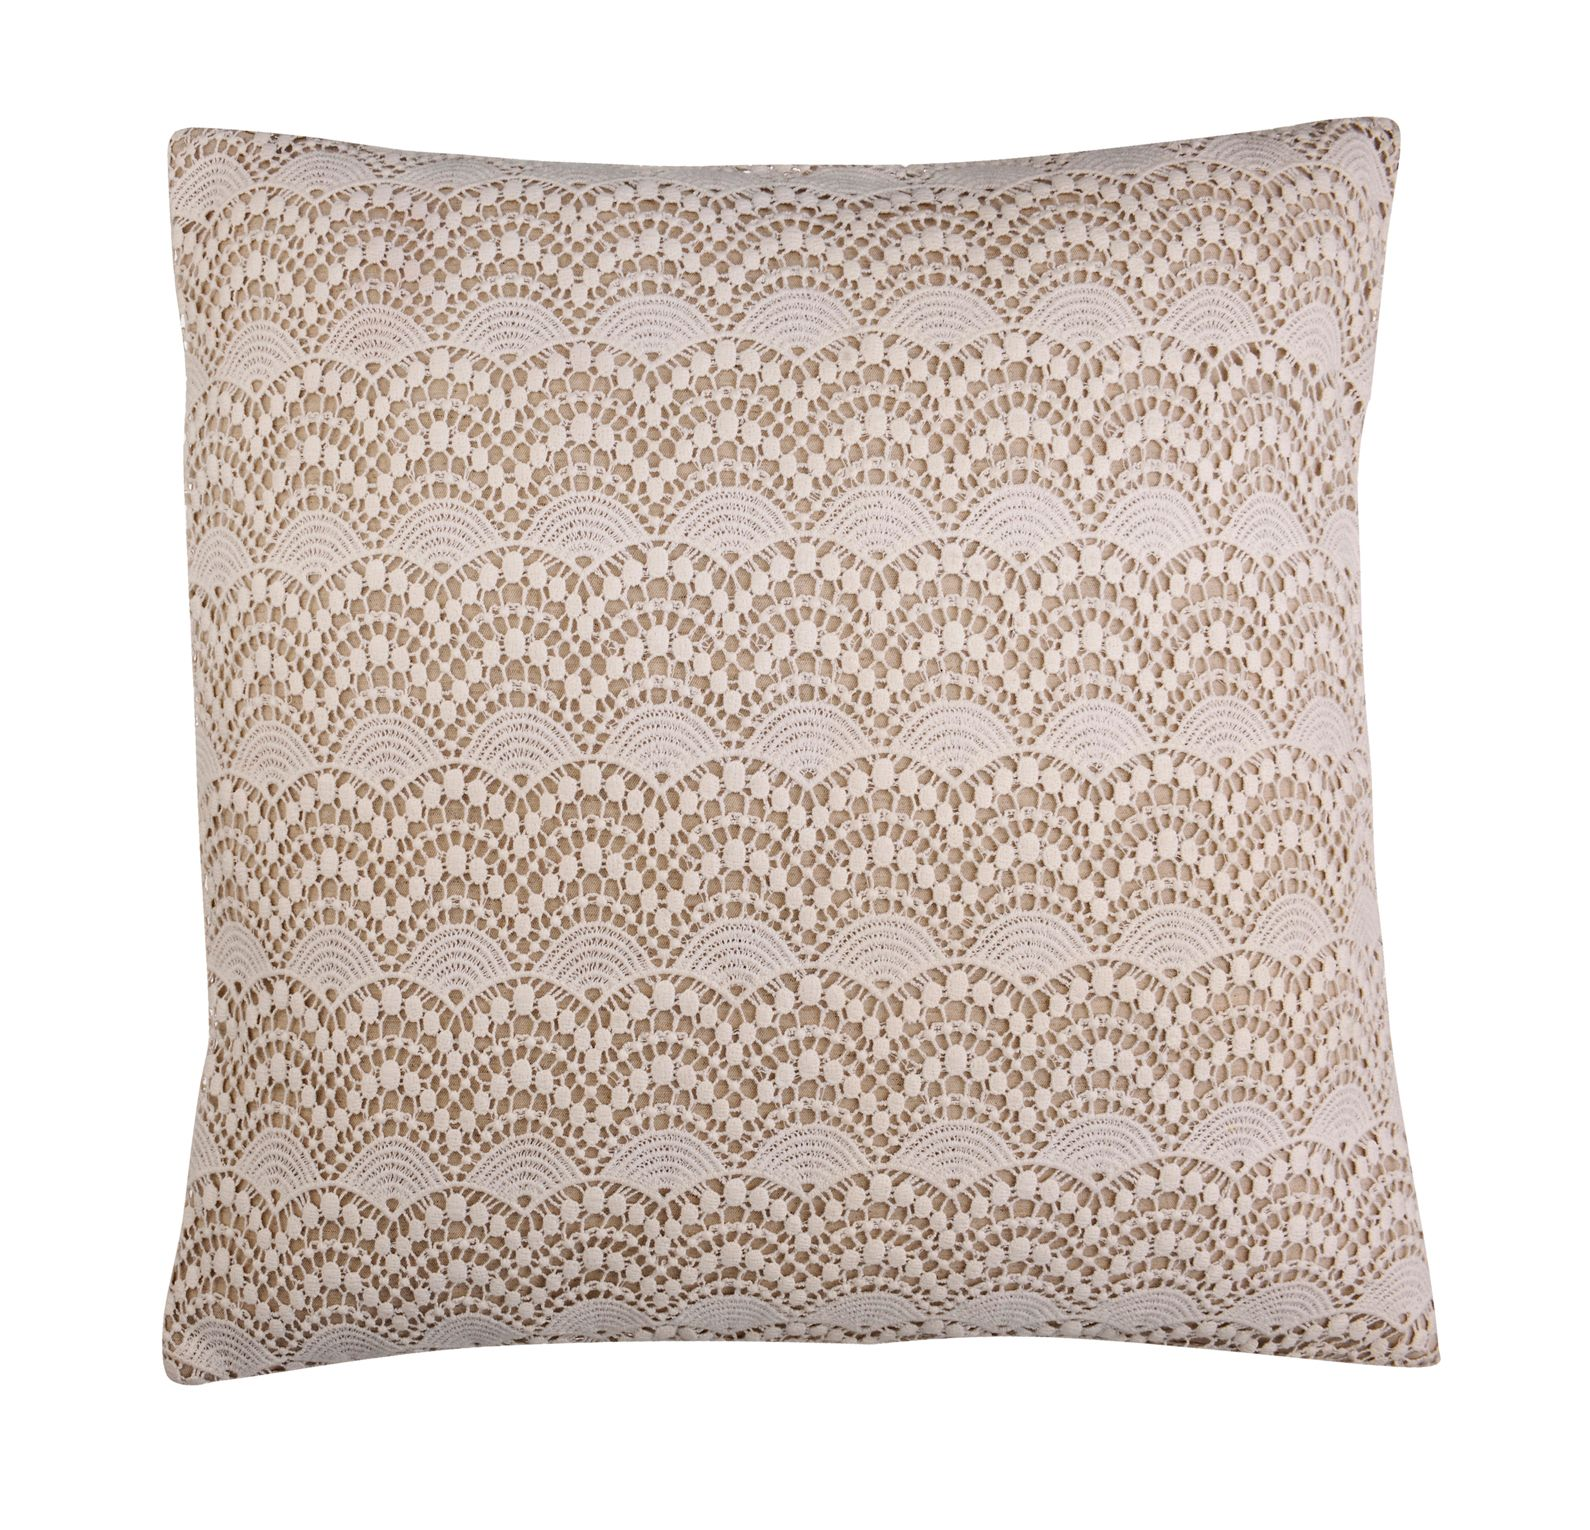 Cream lace cushion